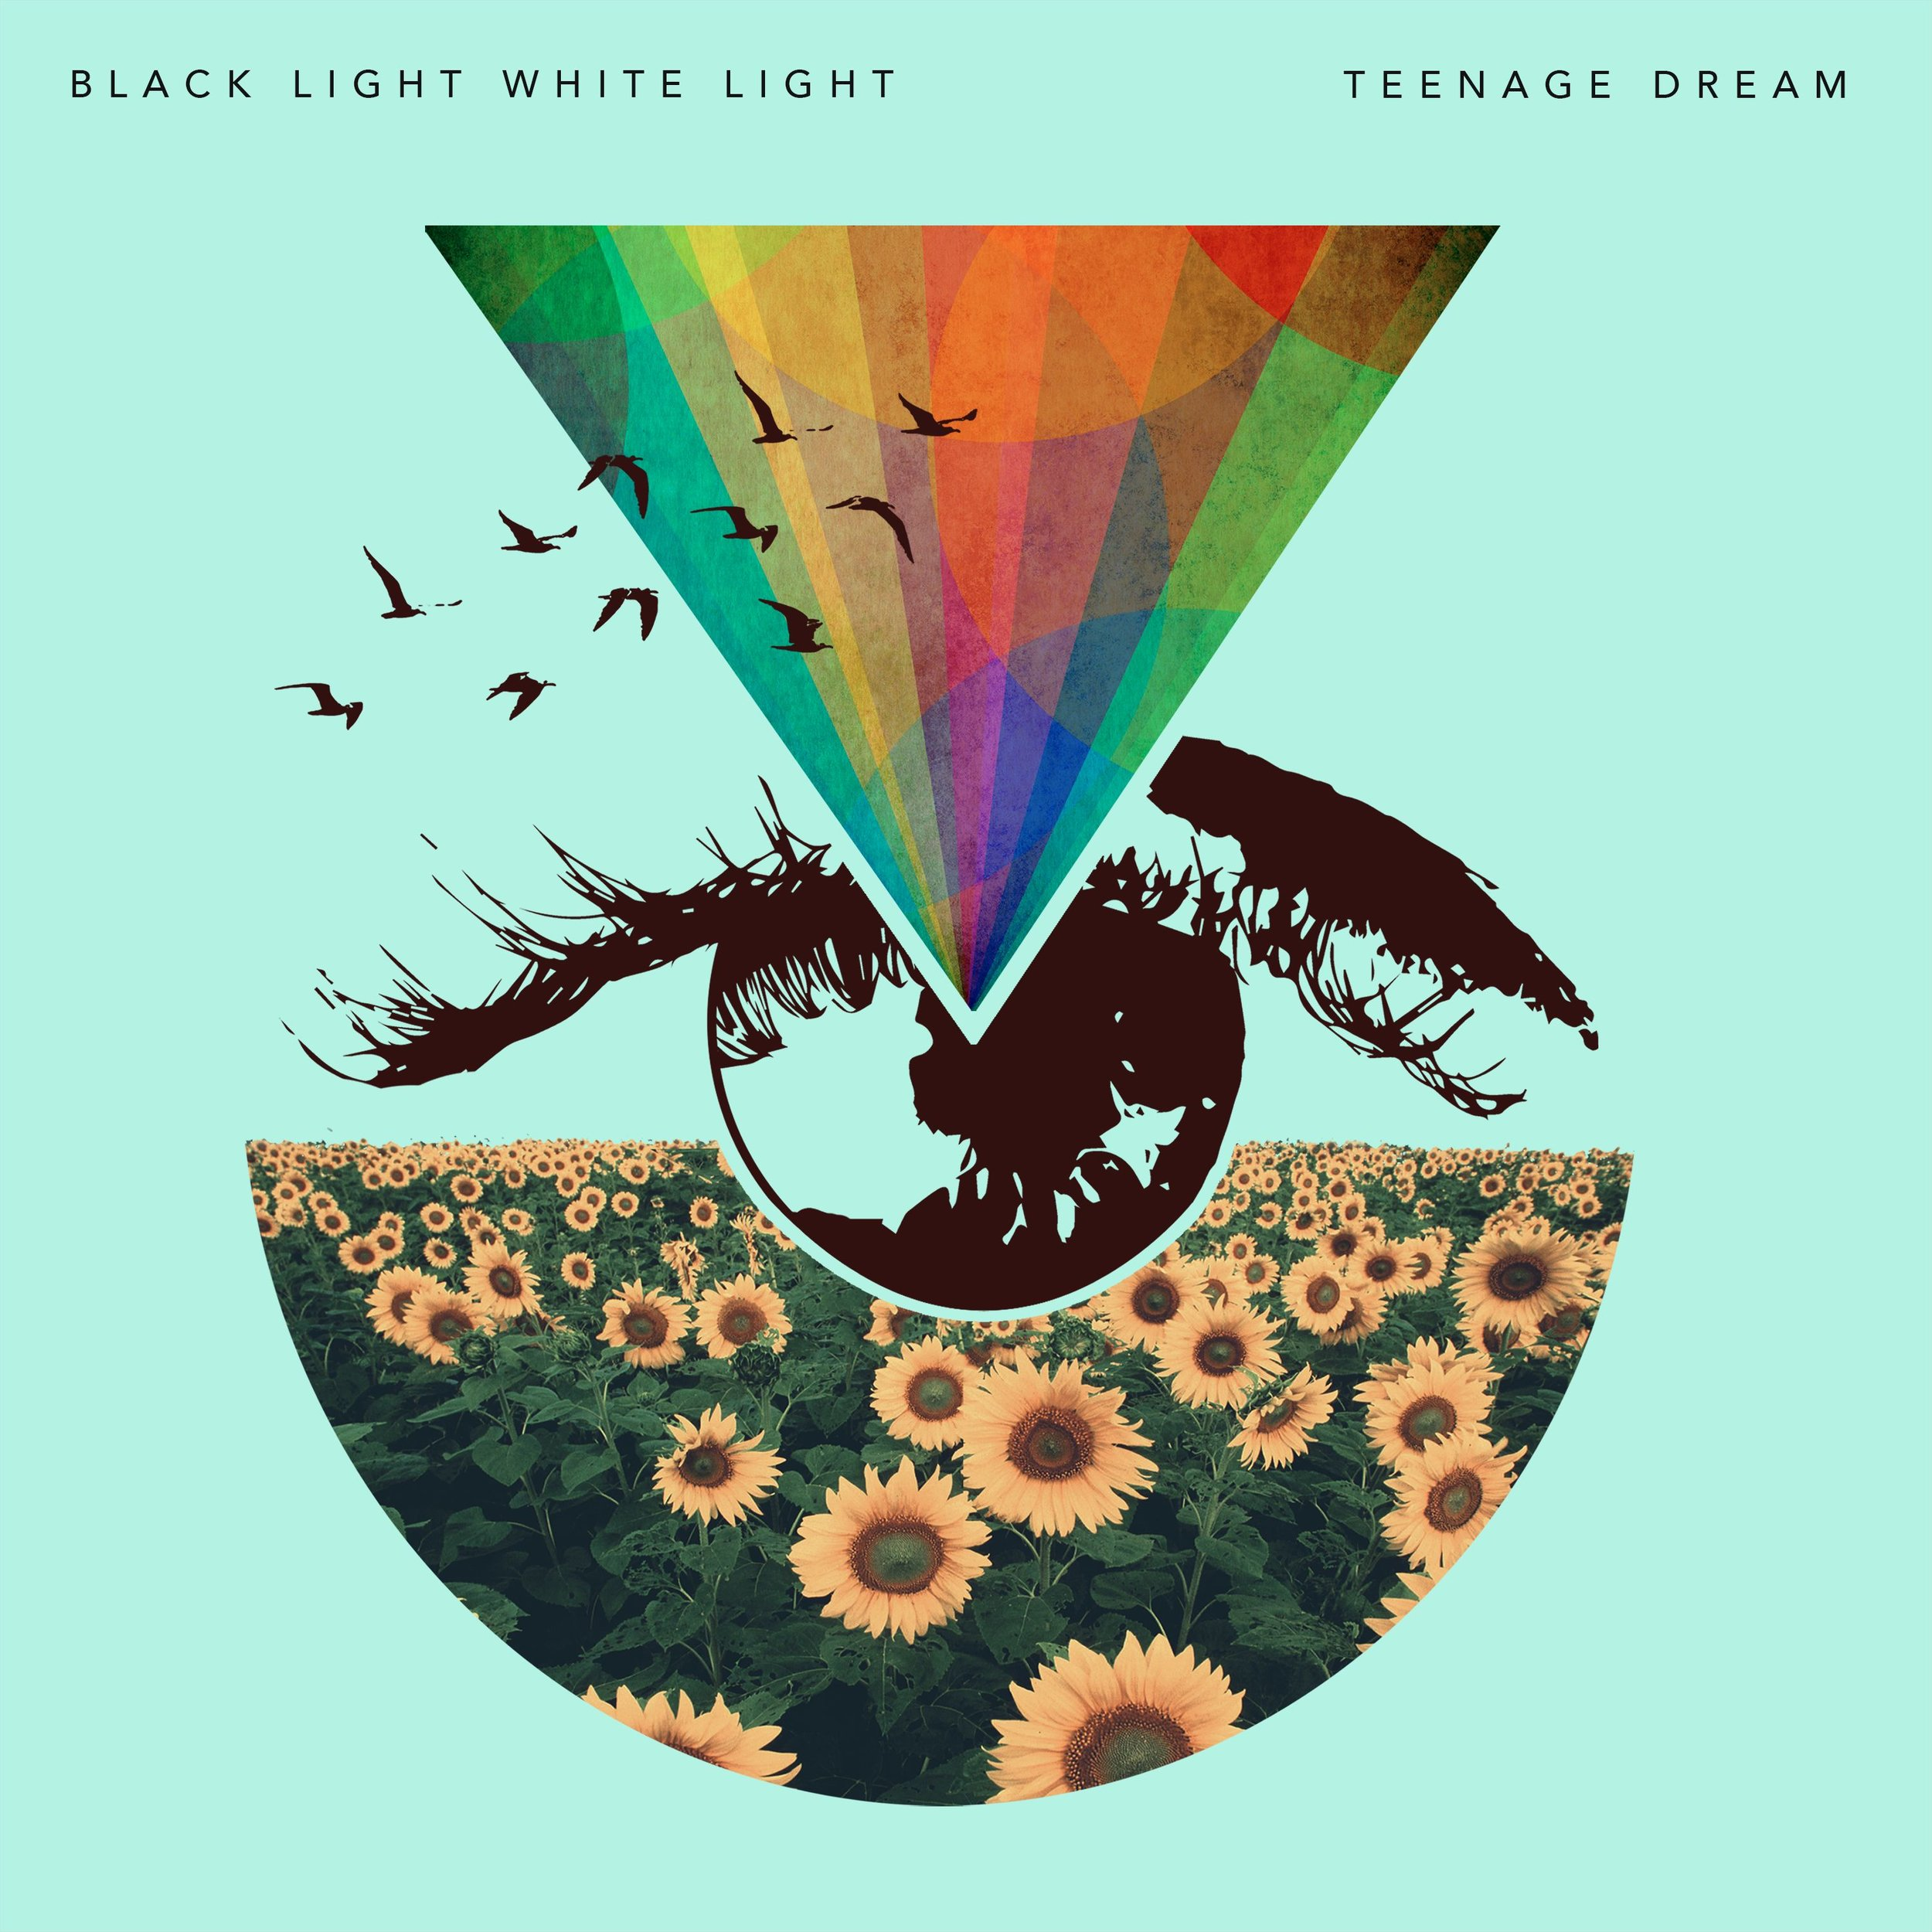 Black Light White Light - Teenage Dream is on their new album, Horizons.